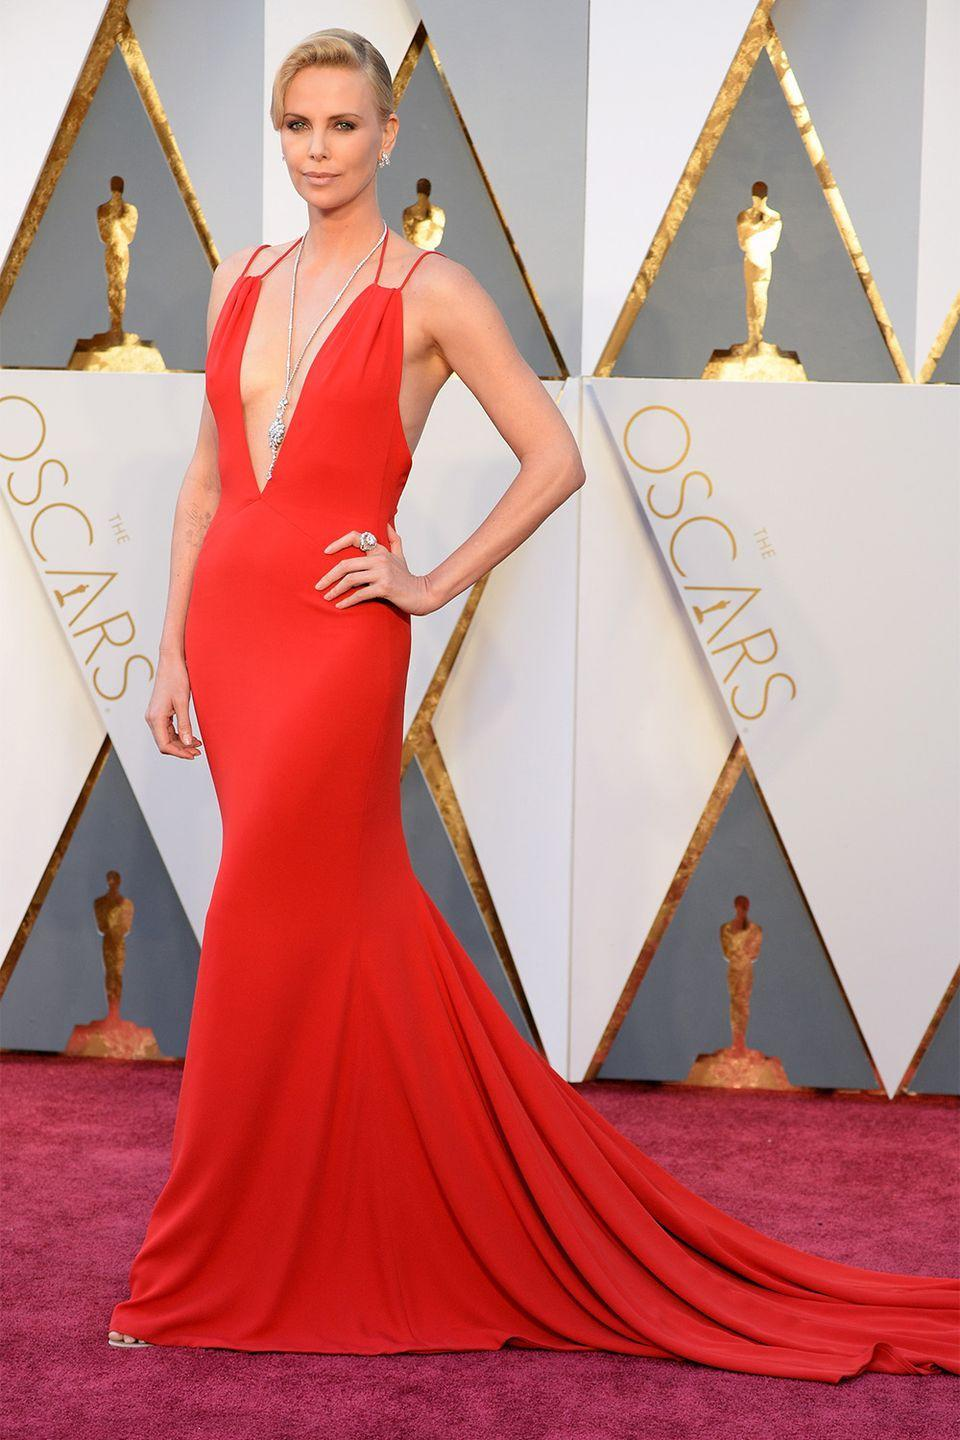 <p>Charlize Theron and Dior go hand-in-hand, the seasoned actress has worked with the French house for years, appearing in their J'adore Dior fragrance ad. This red number was simple yet left a mark on the red carpet. </p>